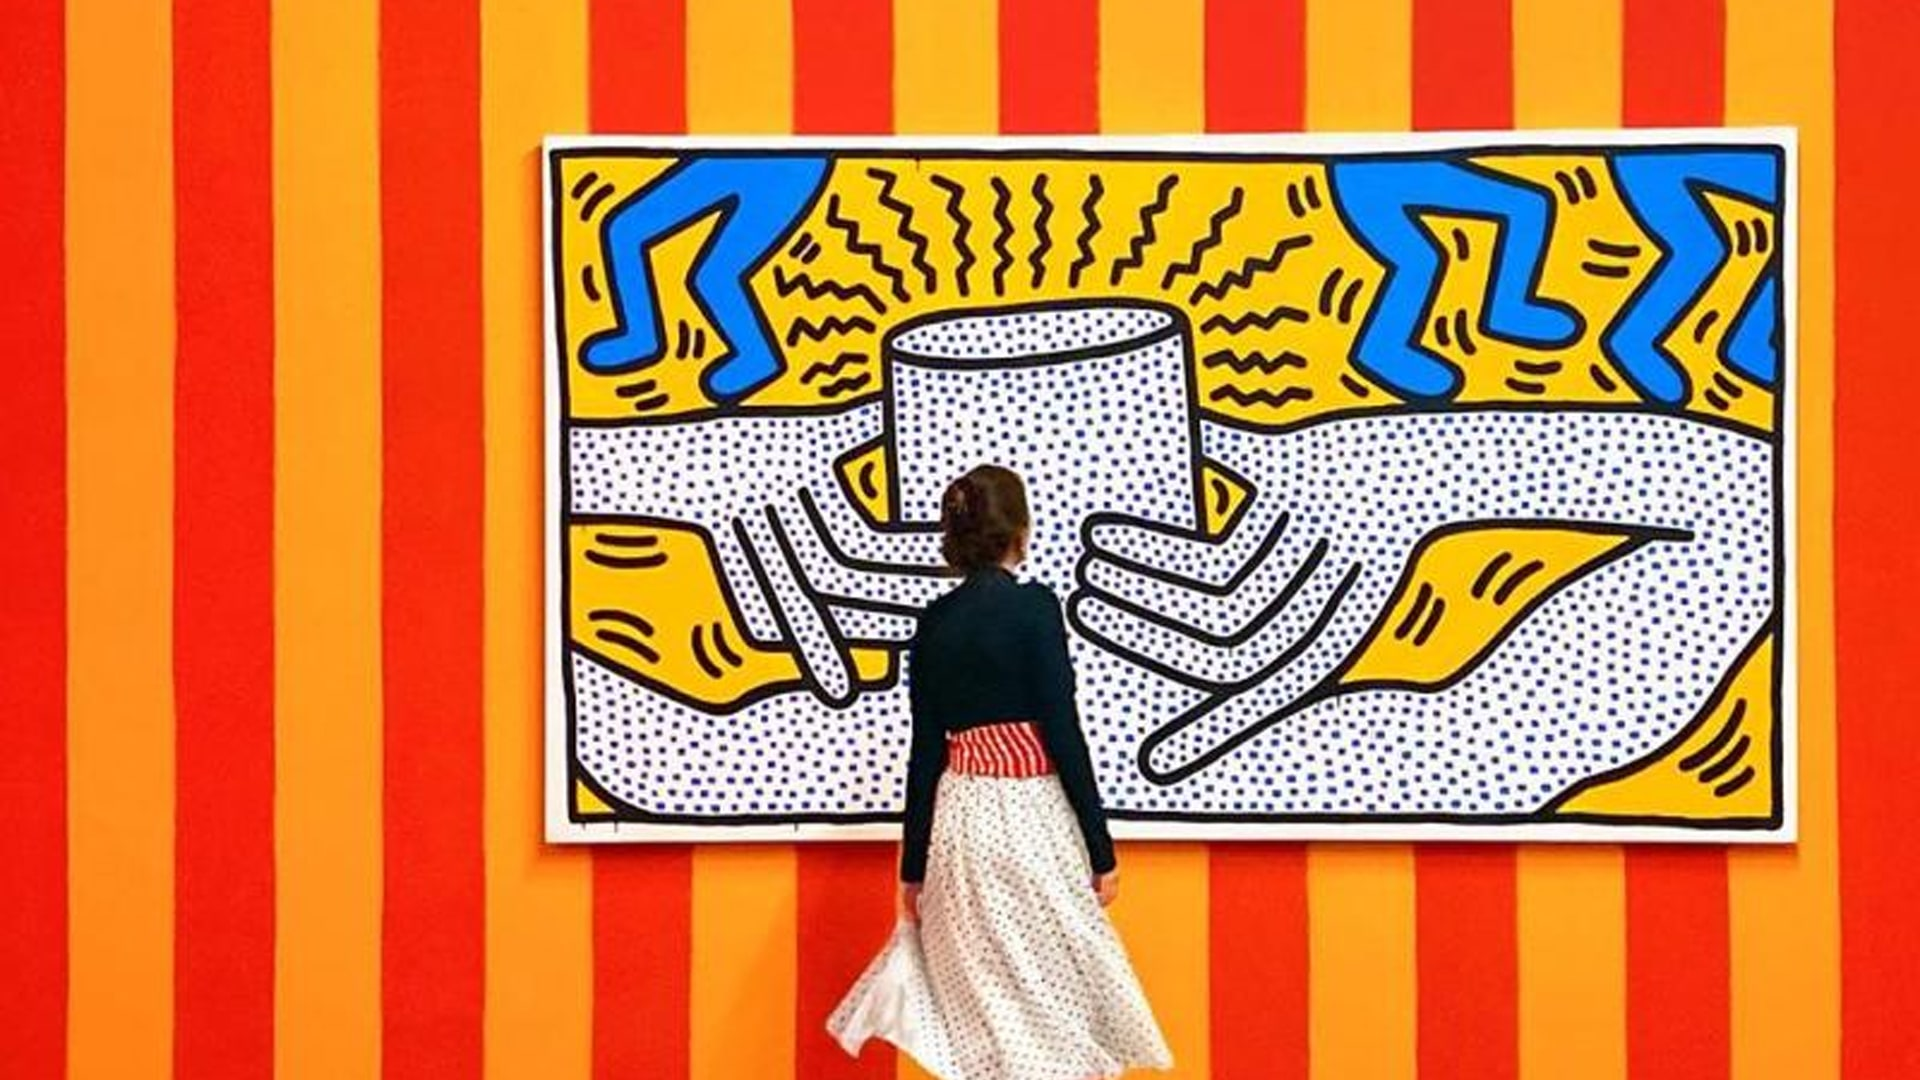 Bozar Brussels Keith Haring picture by Sophie Kugel